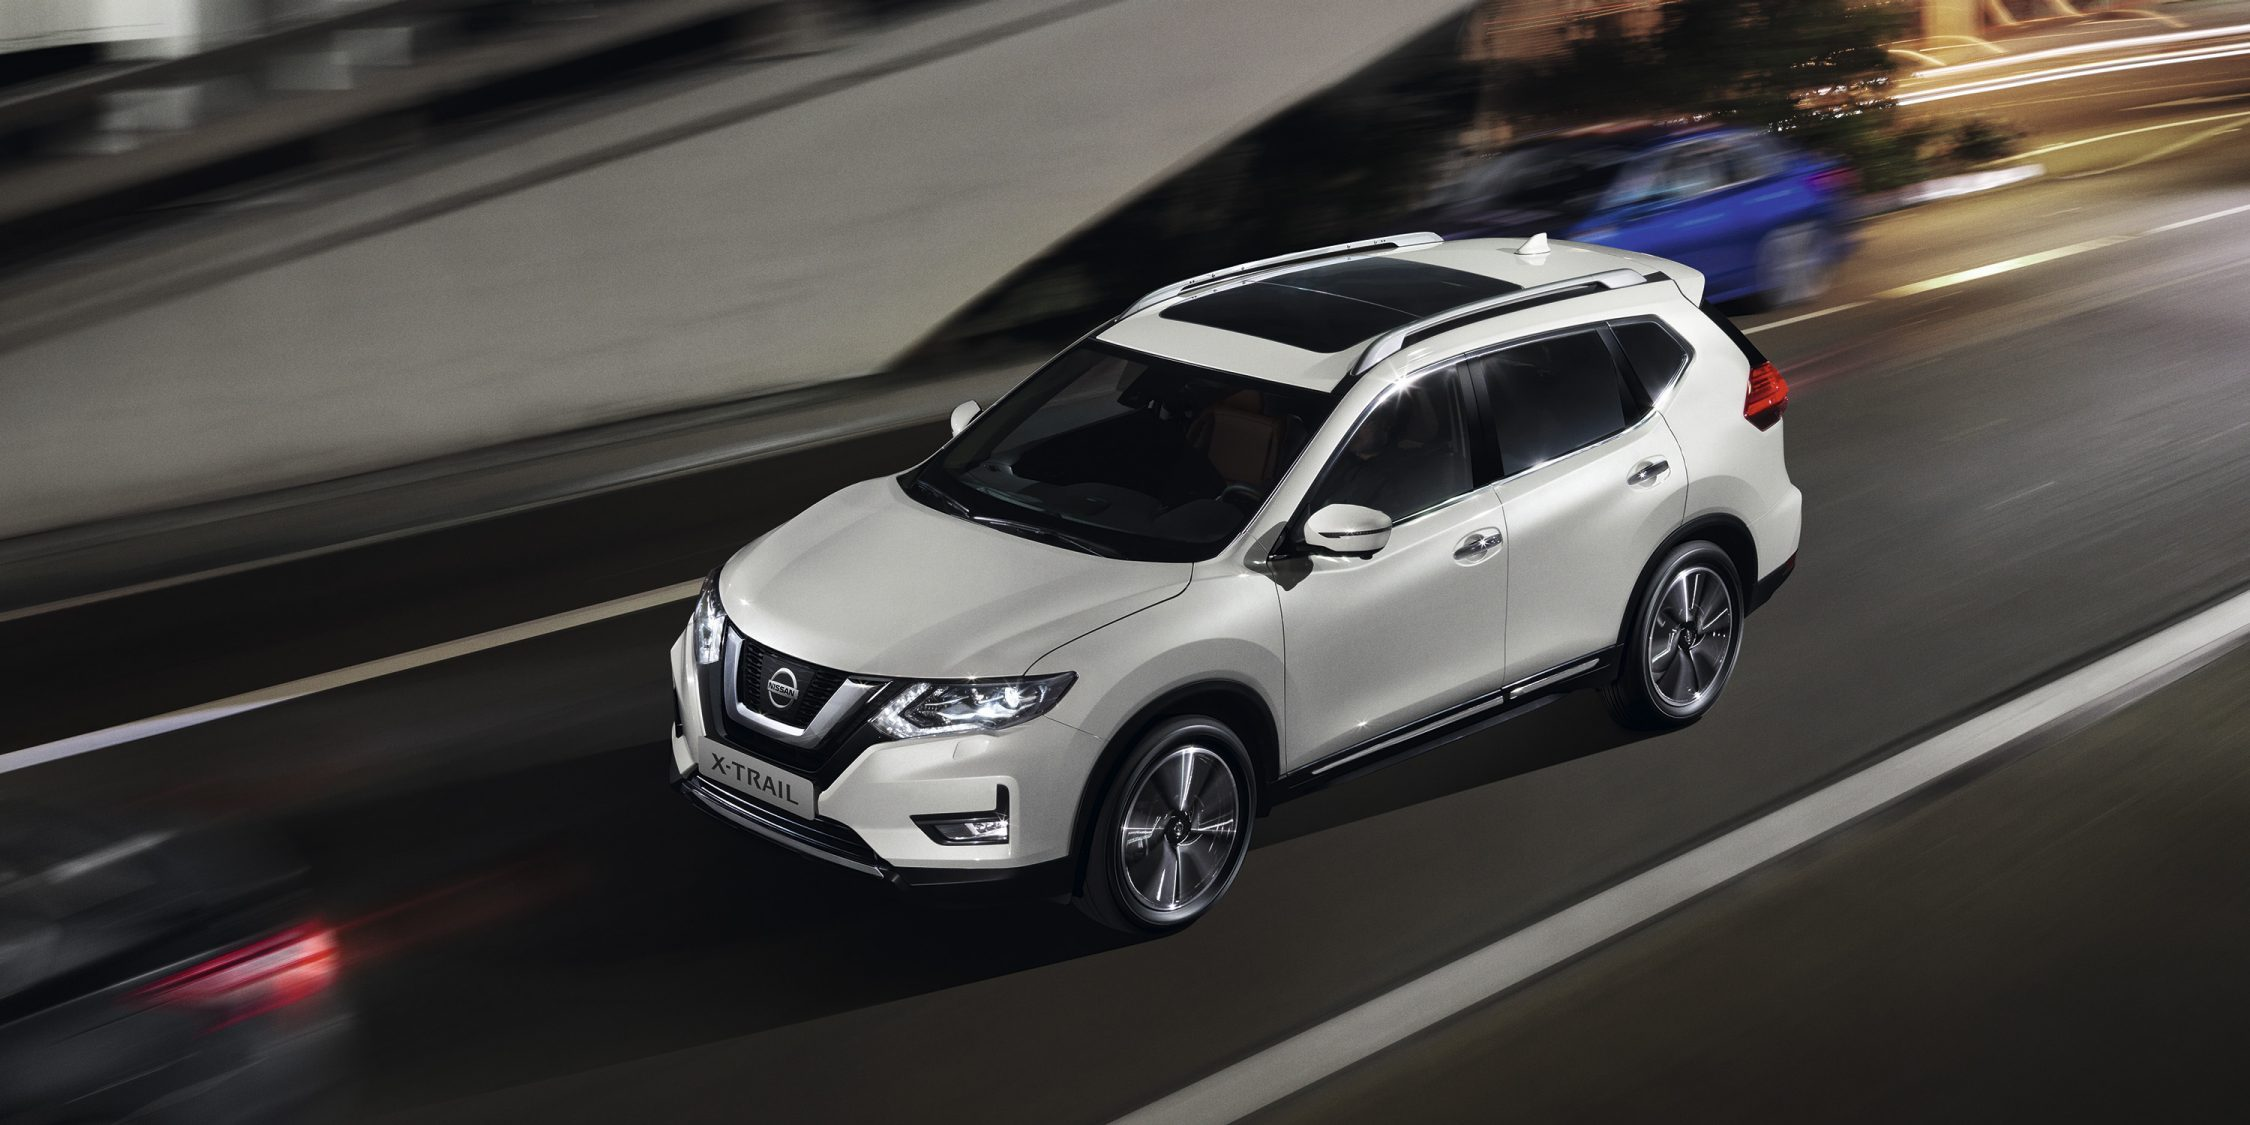 Nissan X-Trail driving on an urban road